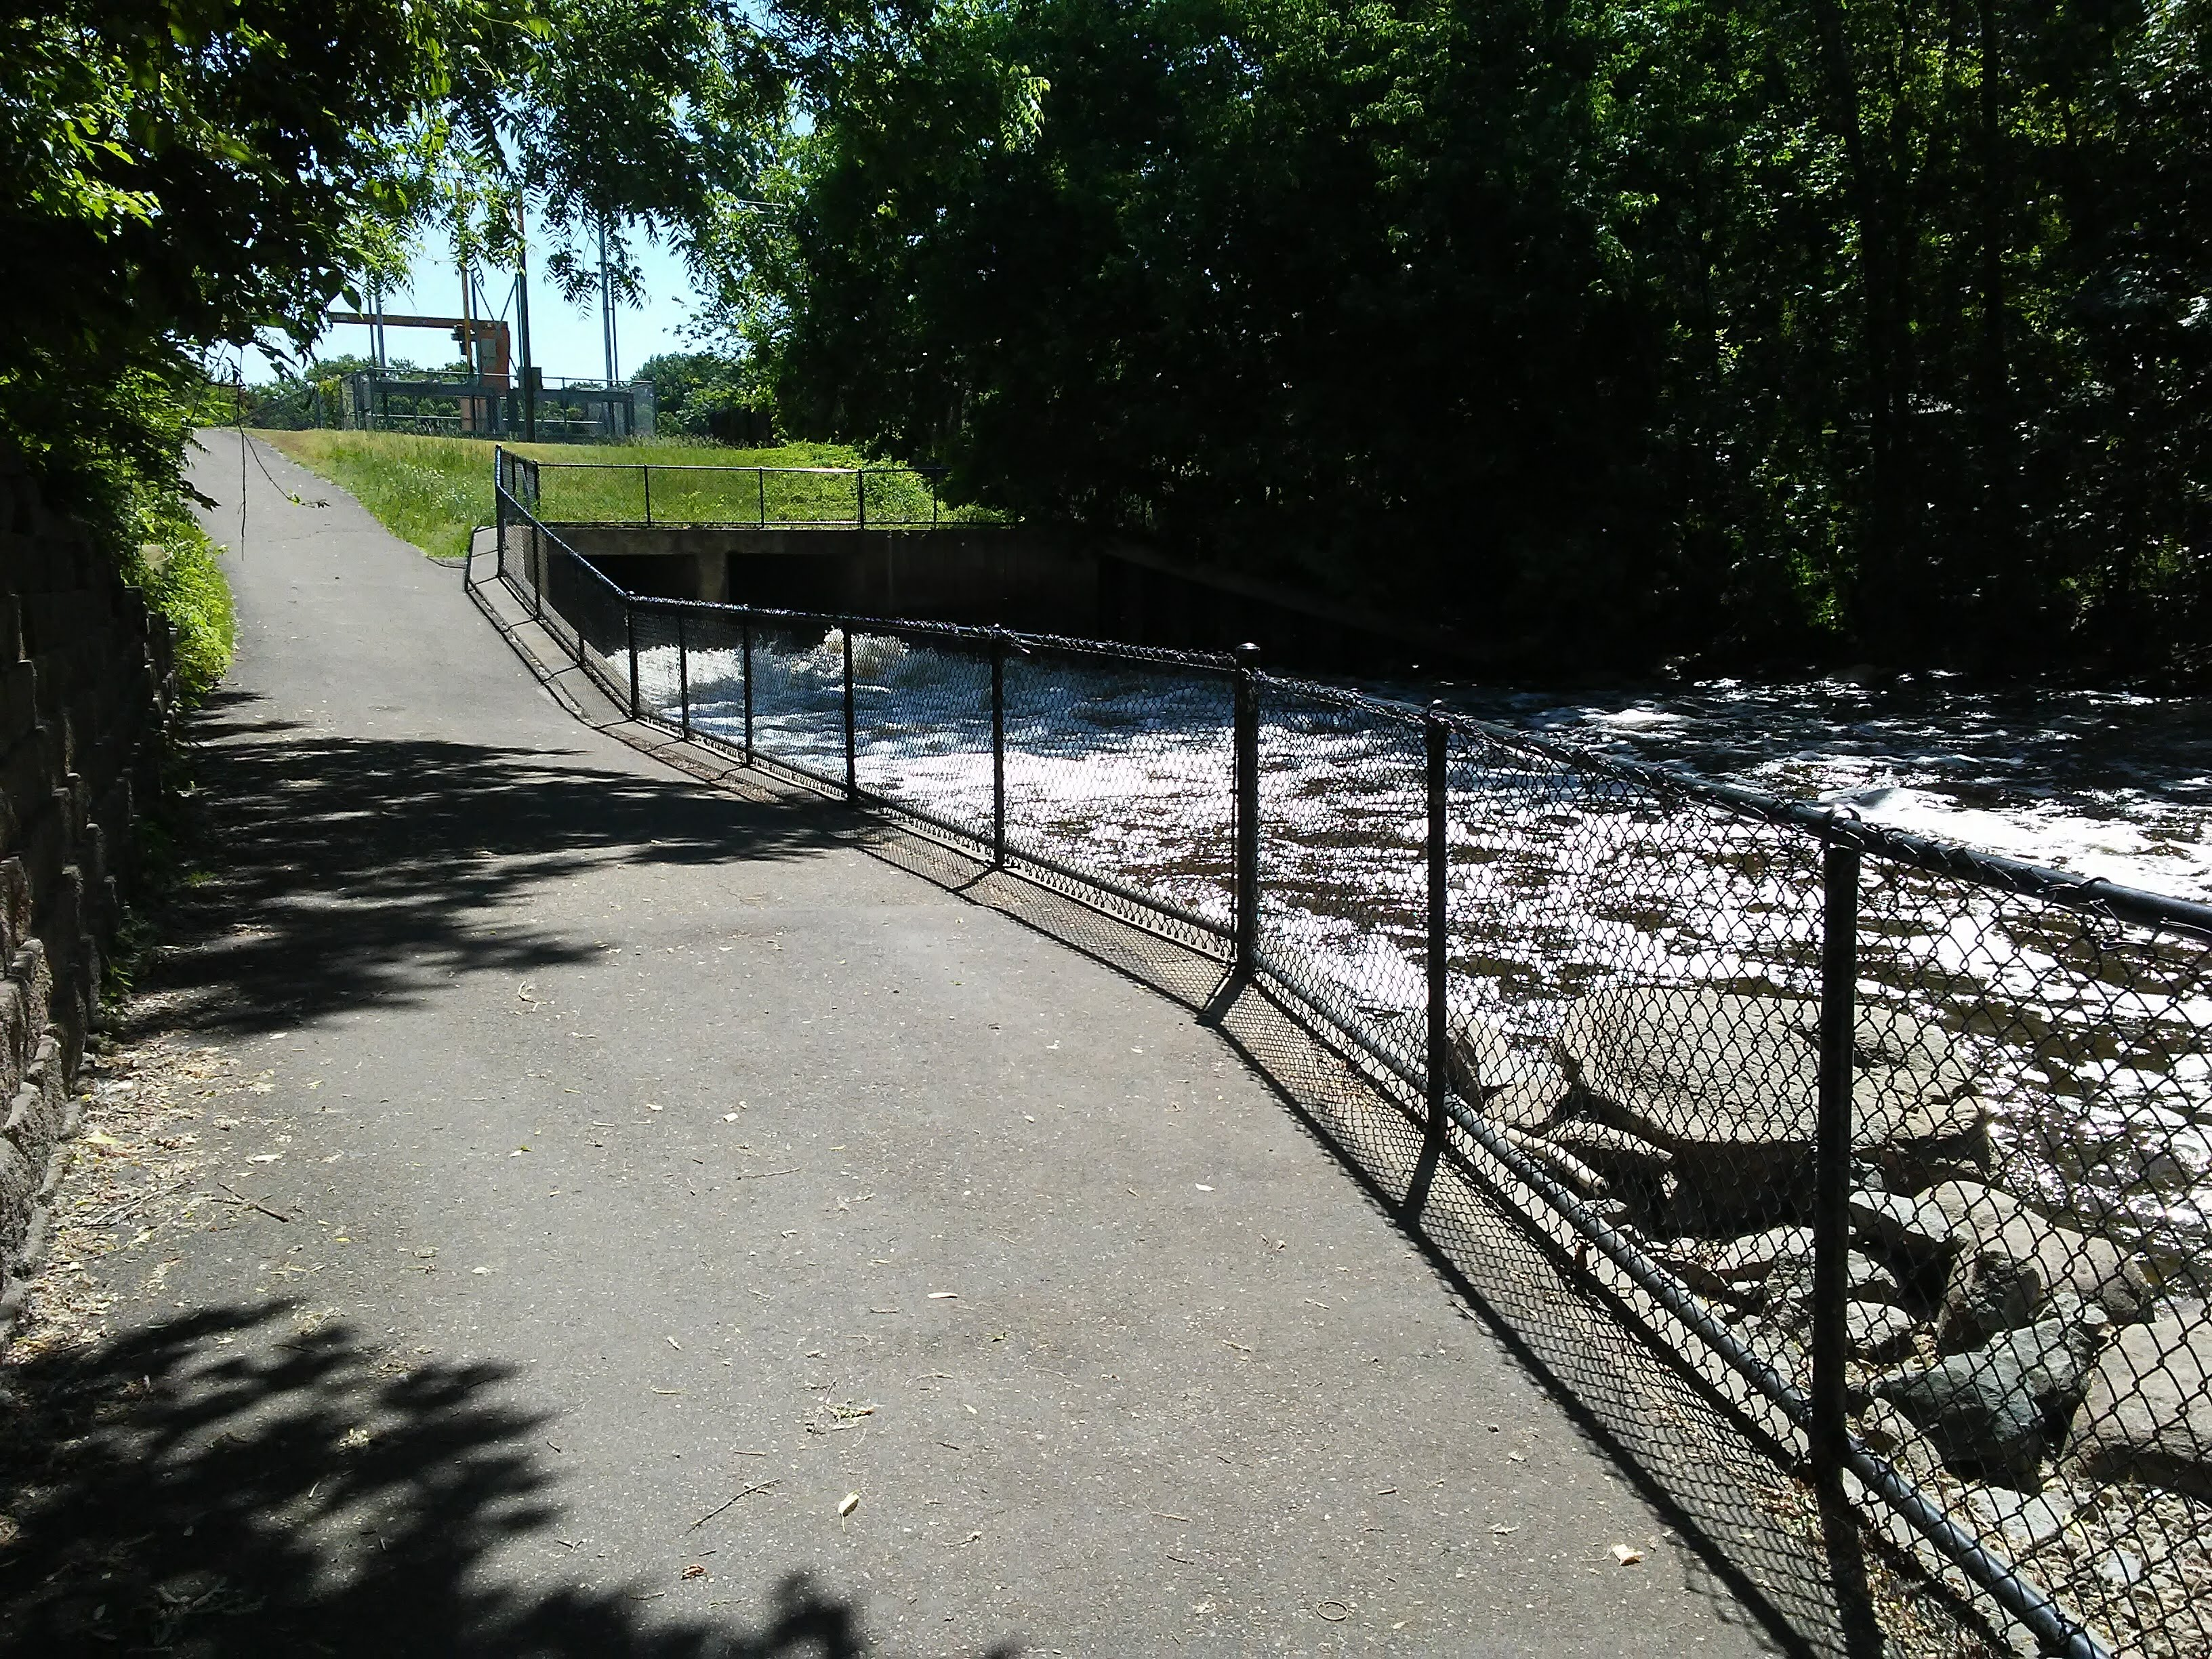 paved path, fence, stream, industrial structure